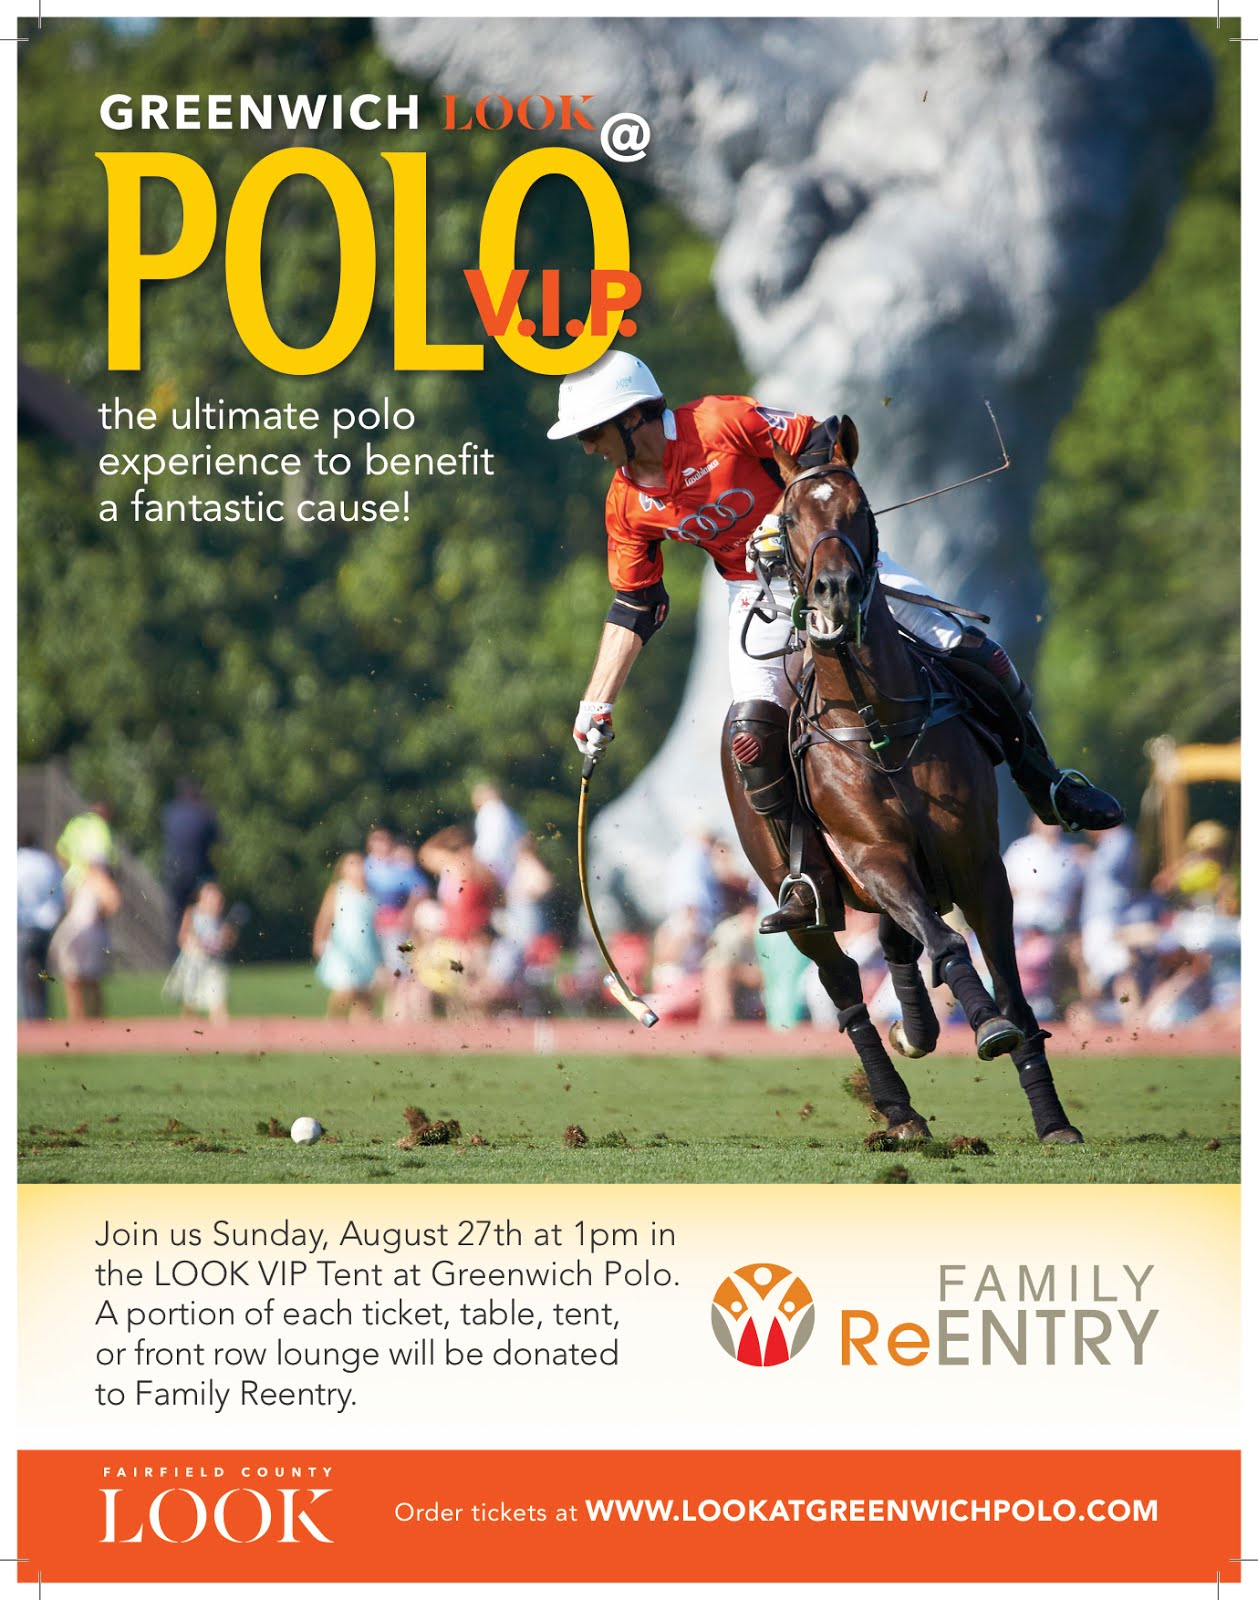 Event: Family ReEntry/Fairfield County LOOK Afternoon at Greenwich Polo, Sun., Aug. 27, 2017